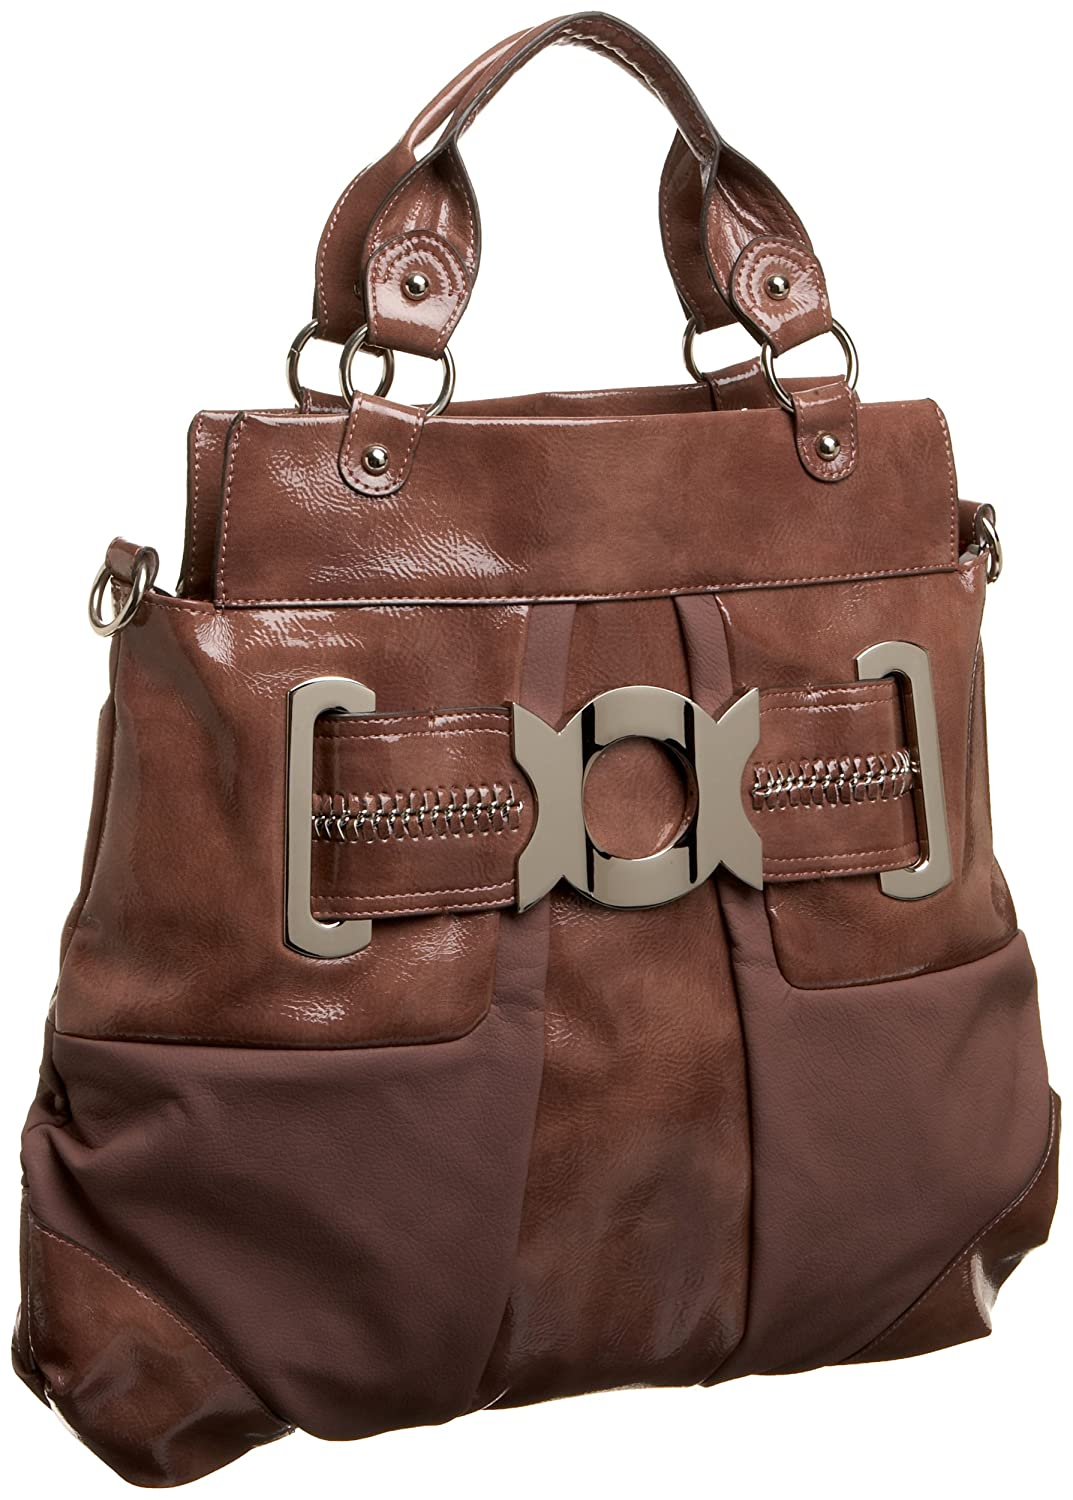 Endless.com: Rampage Koi Tote: Handbags & Accessories - Free Overnight Shipping & Return Shipping :  handbag free koi rampage